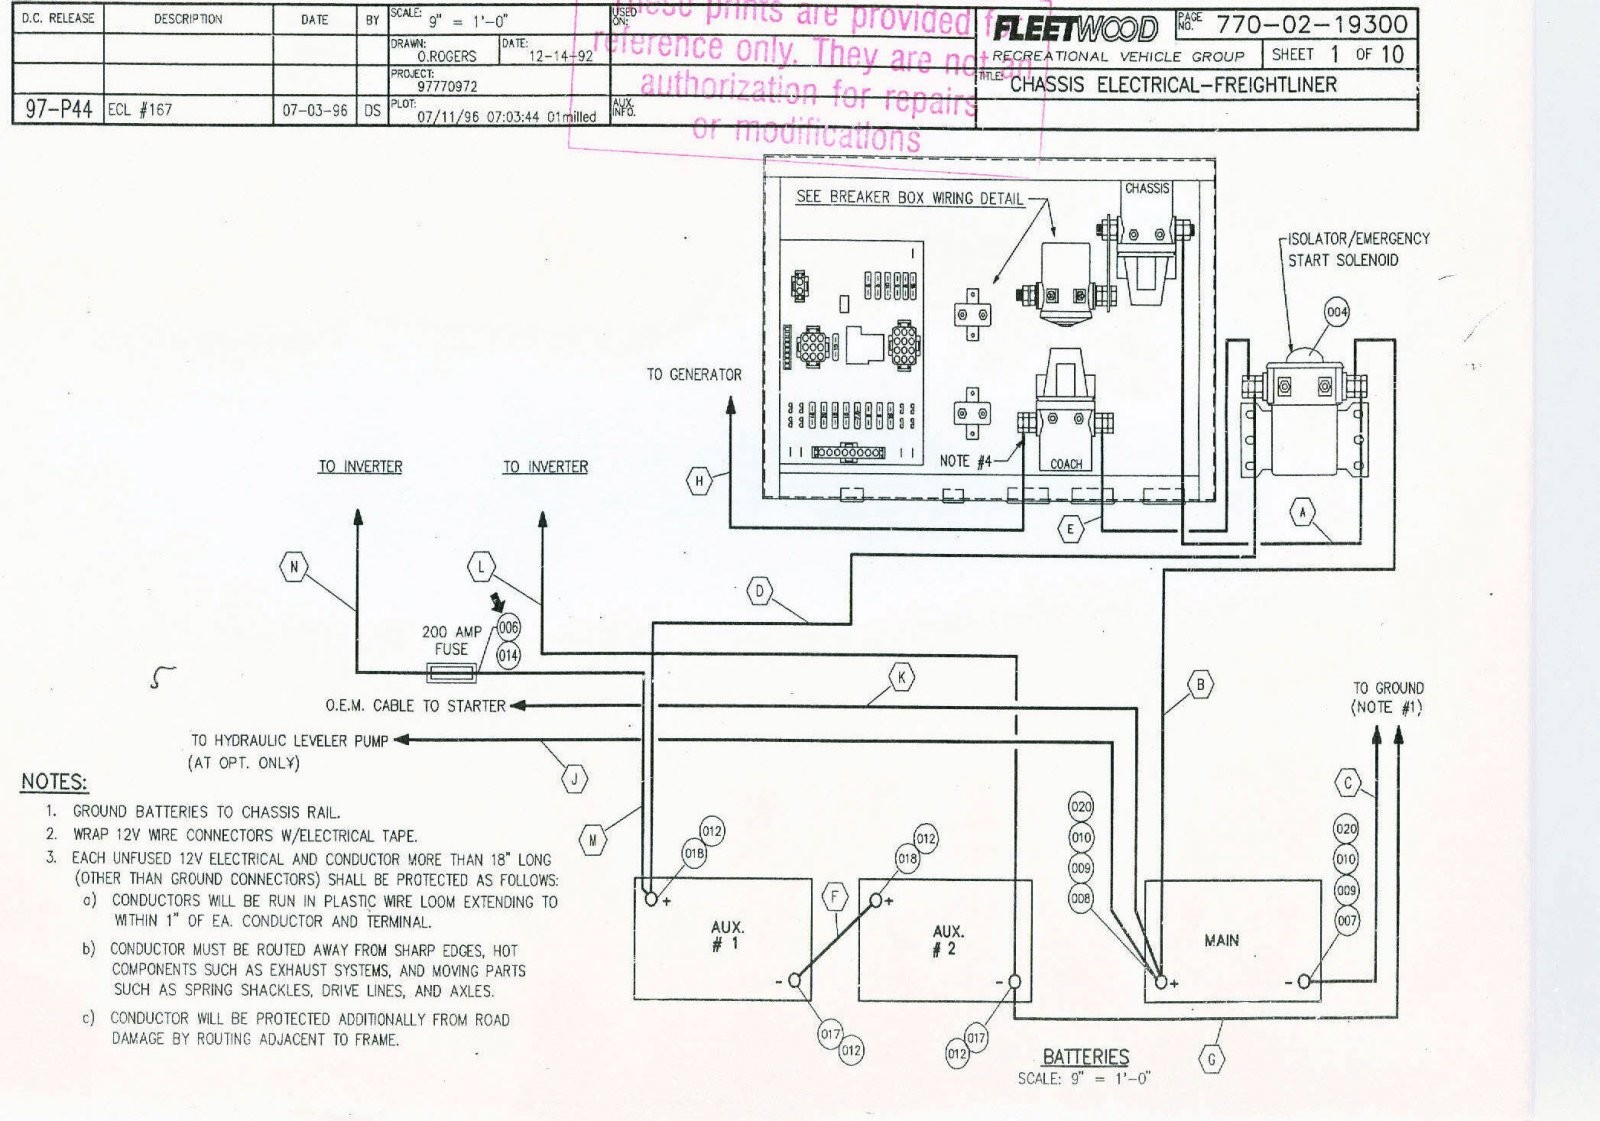 winnebago ac wiring trusted wiring diagram rh dafpods co Winnebago Diagram Sightseer 2005 30Bwiring Winnebago Diagram Sightseer 2005 30Bwiring